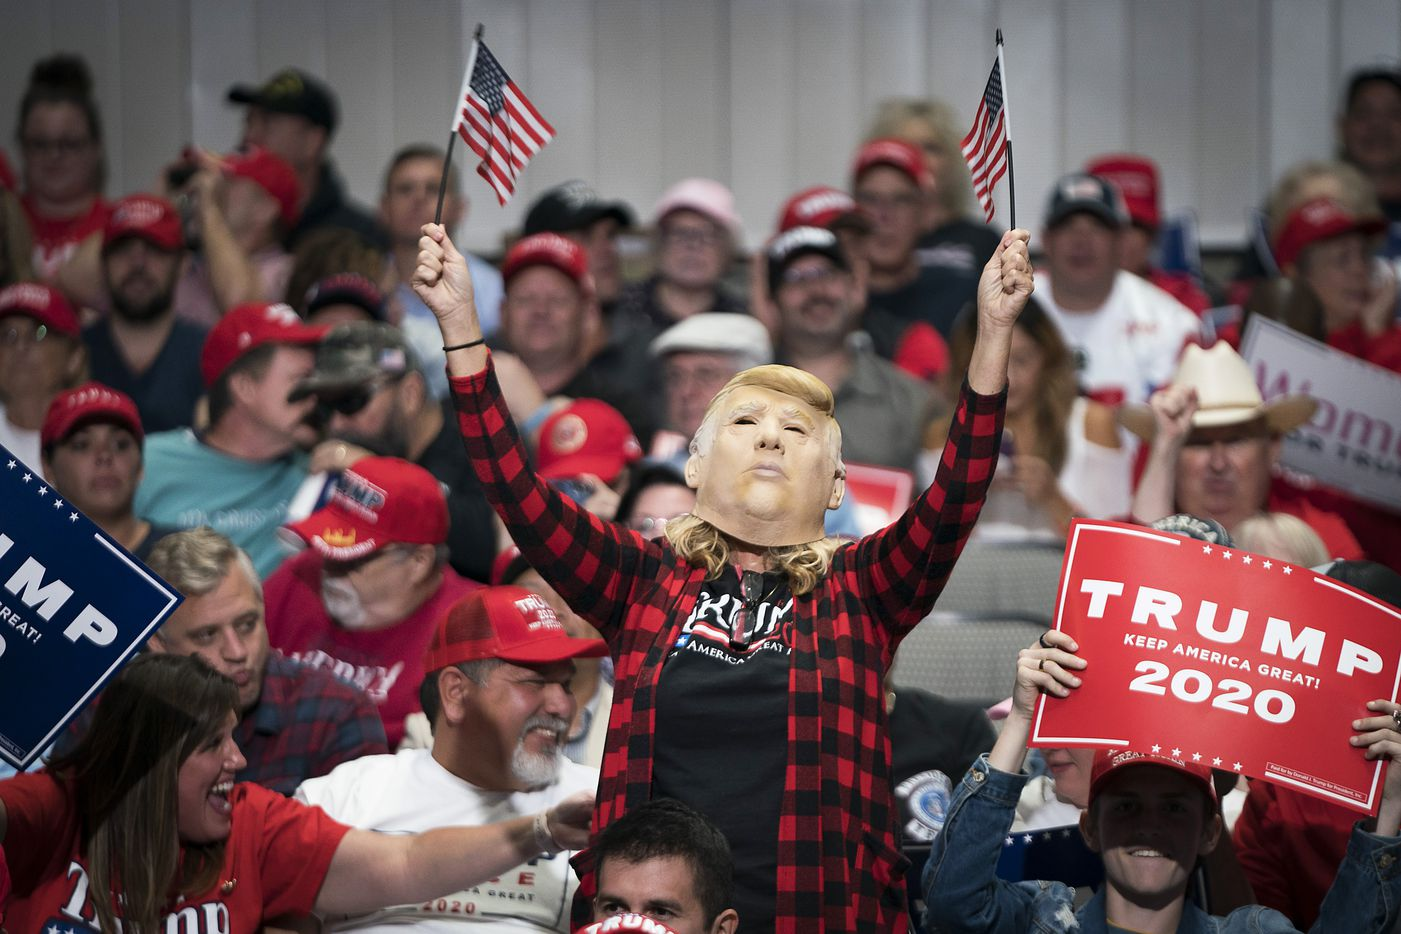 Supporters cheer President Donald Trump before his arrival at campaign rally at the American Airlines Center on Thursday, Oct. 17, 2019, in Dallas.